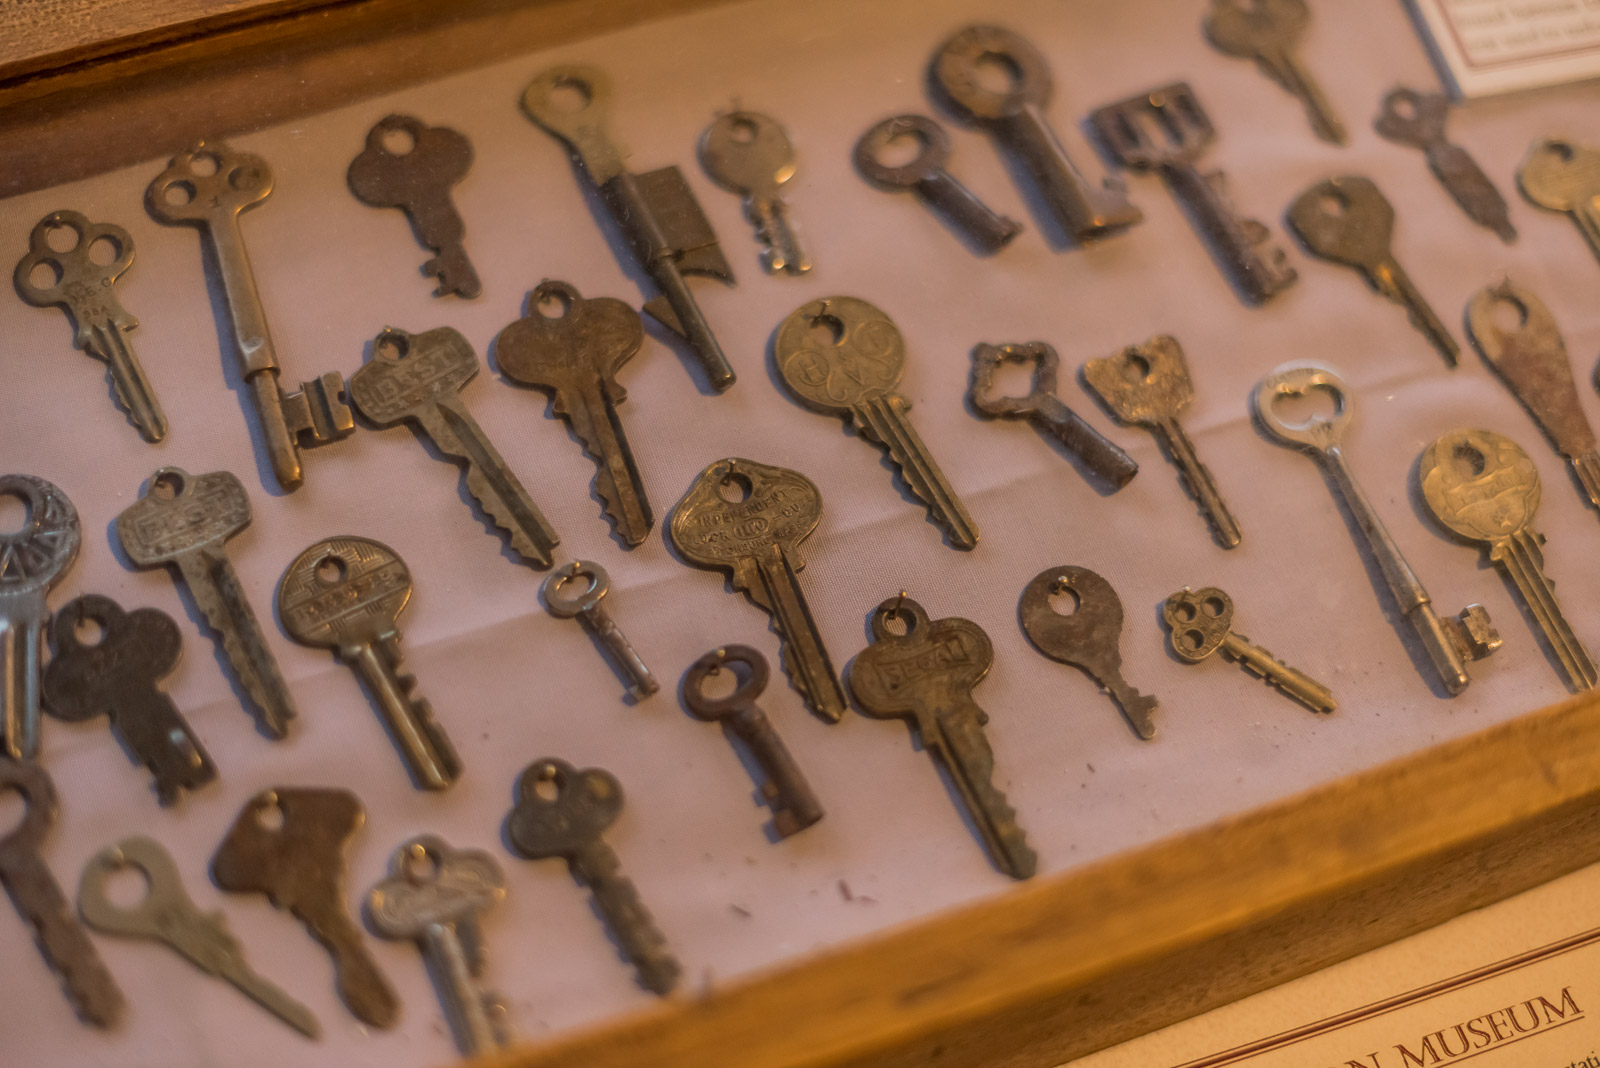 Keys from the museum's collection